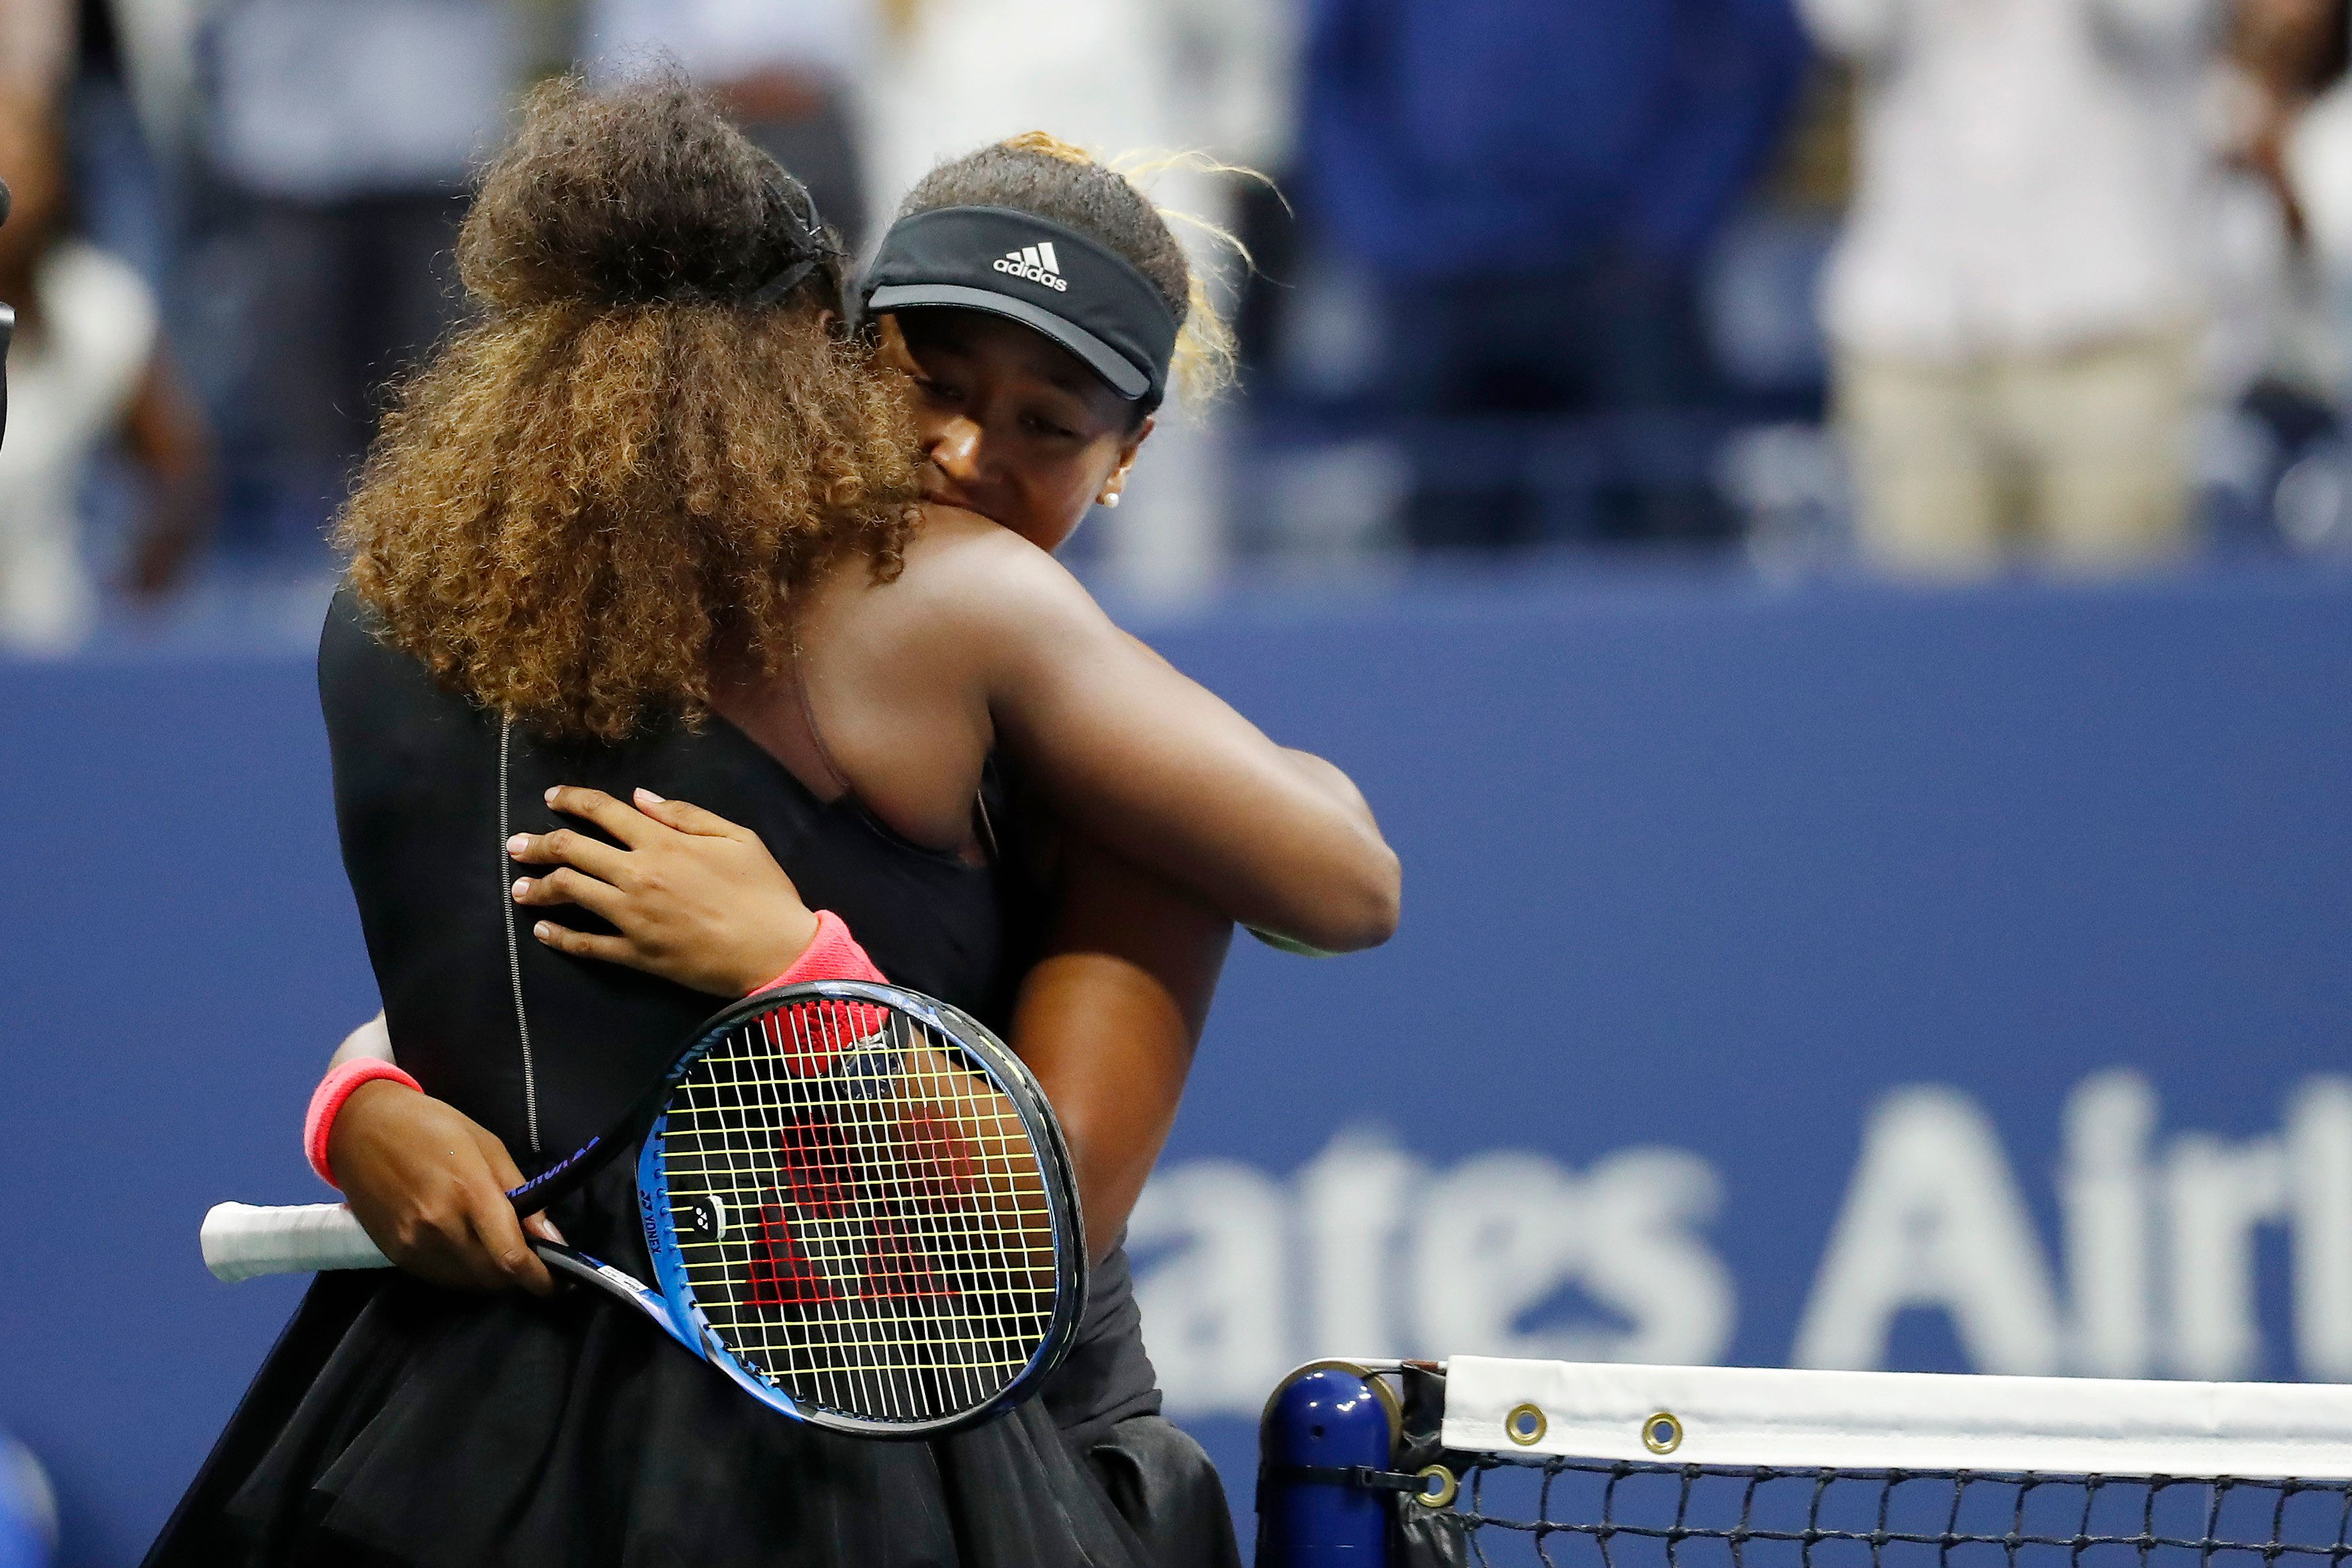 Sep 8, 2018; New York, NY, USA; Naomi Osaka of Japan (R) hugs Serena Williams of the United States (L) after their match in the women's final on day thirteen of the 2018 U.S. Open tennis tournament at USTA Billie Jean King National Tennis Center. Mandatory Credit: Geoff Burke-USA TODAY Sports